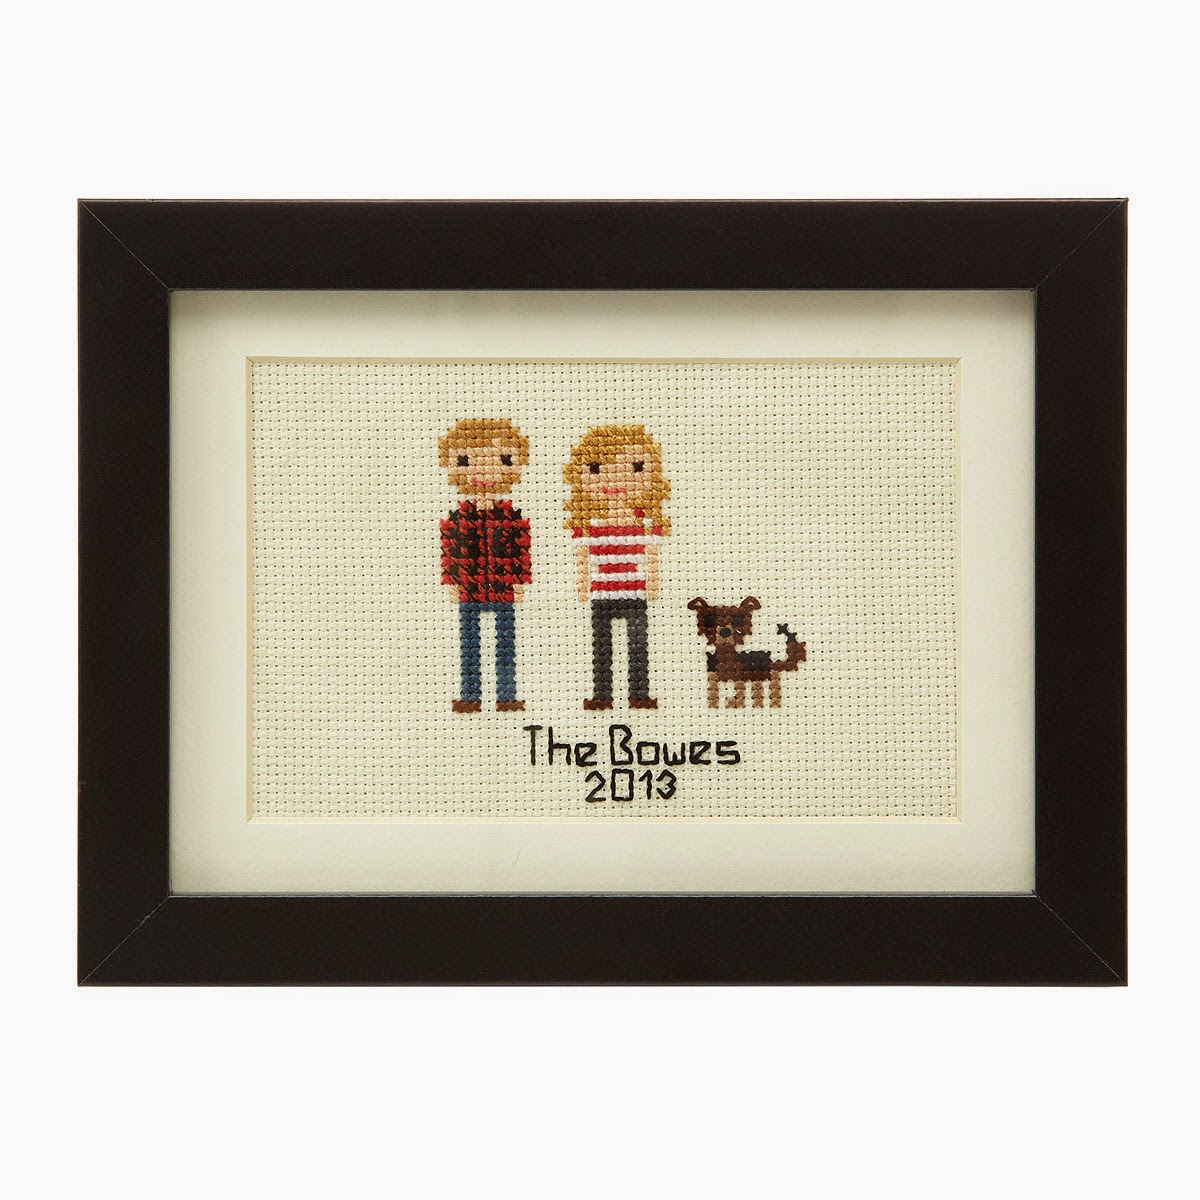 5th Wedding Anniversary Gift Ideas 21 Beautiful There are tons of